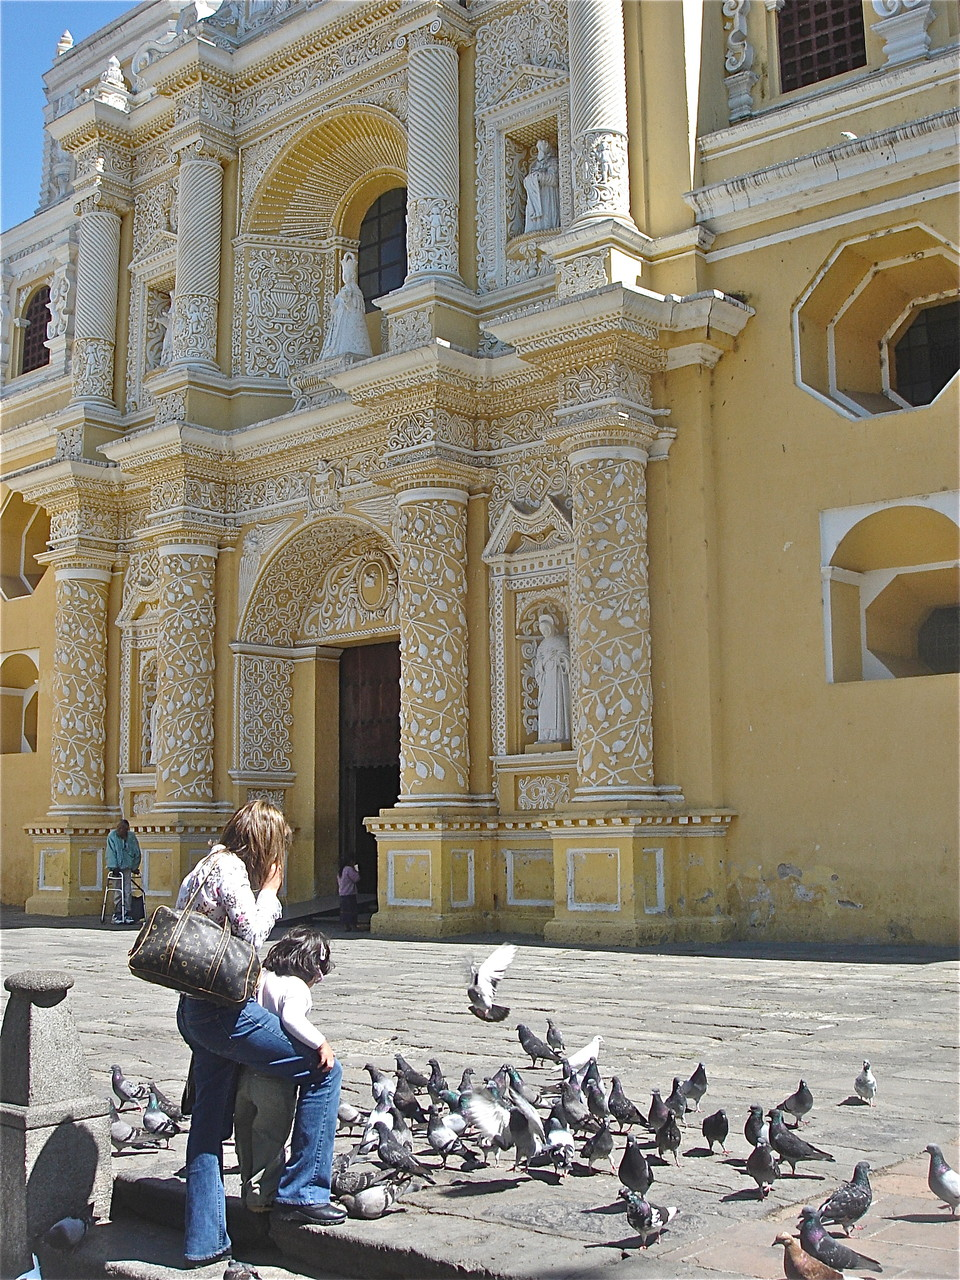 Church and convent of Nuestra Señora de la Merced